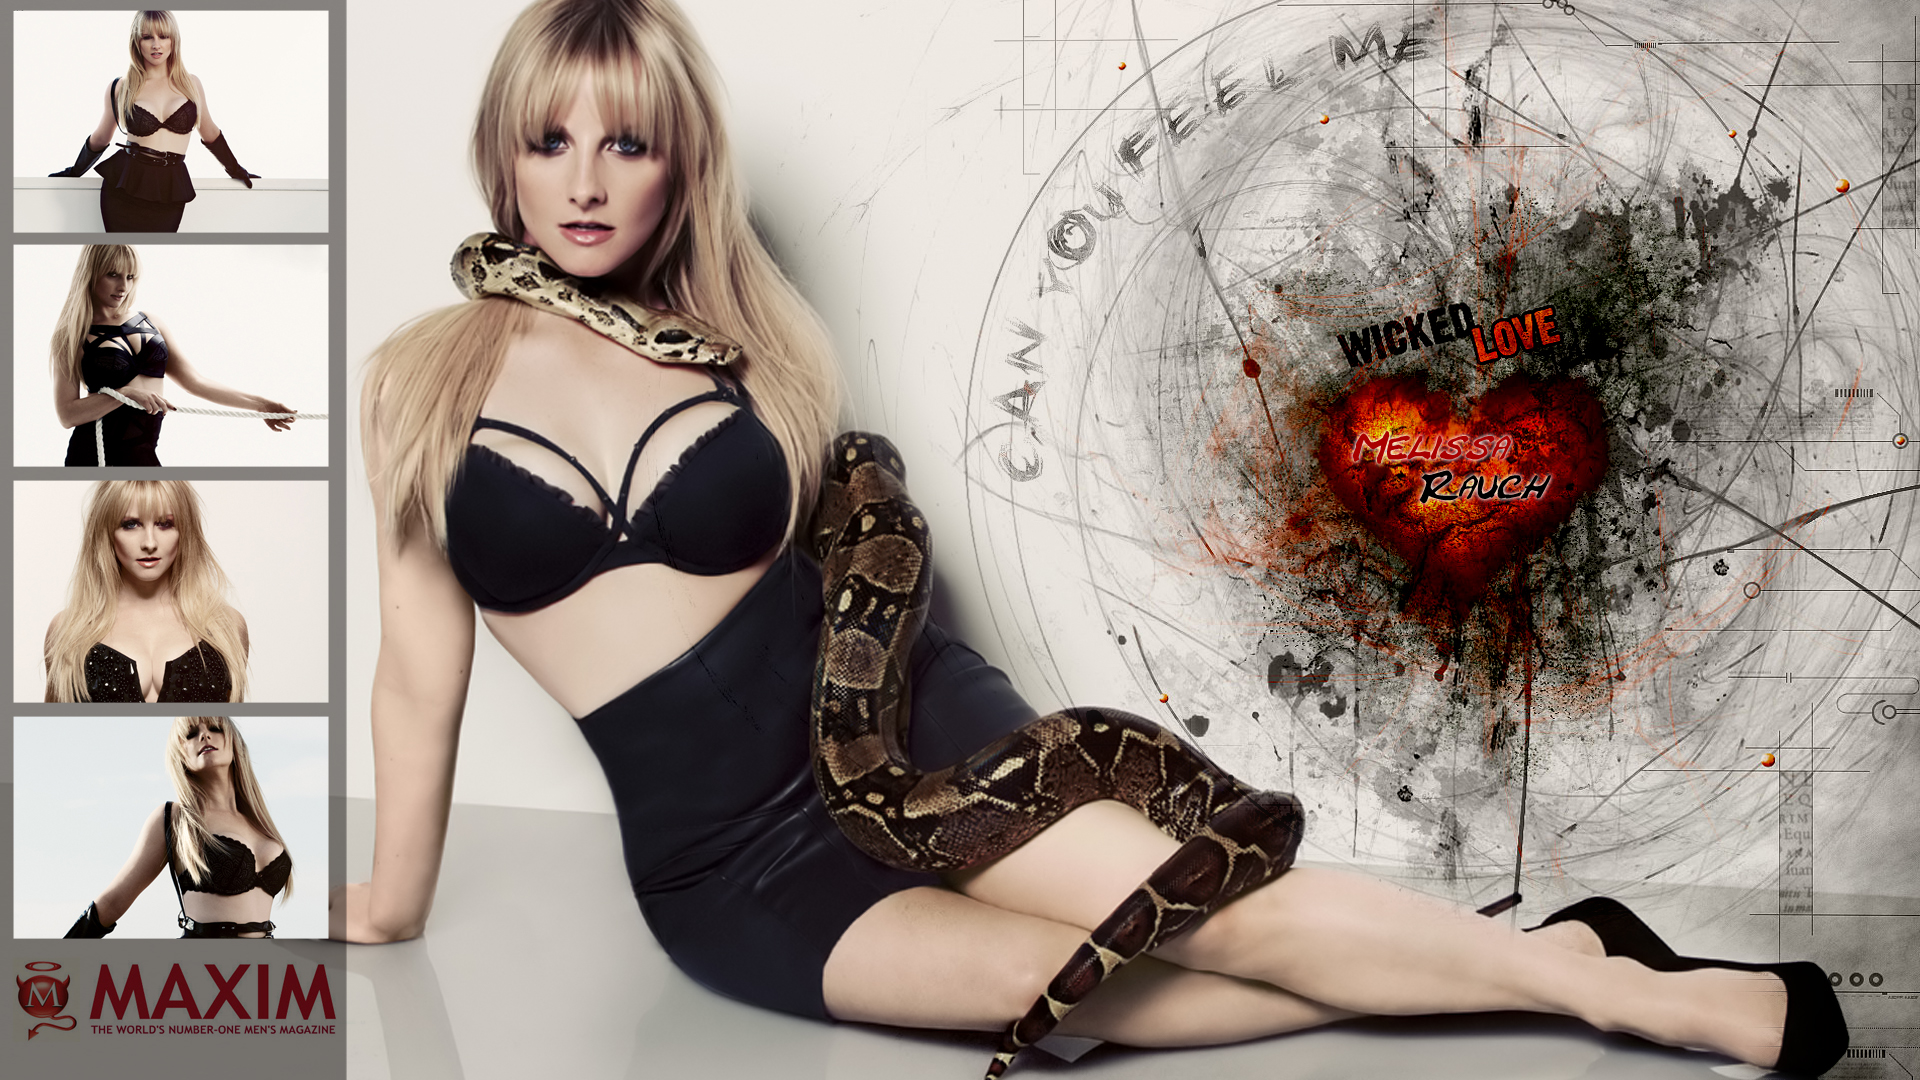 Are Melissa rauch see through remarkable message